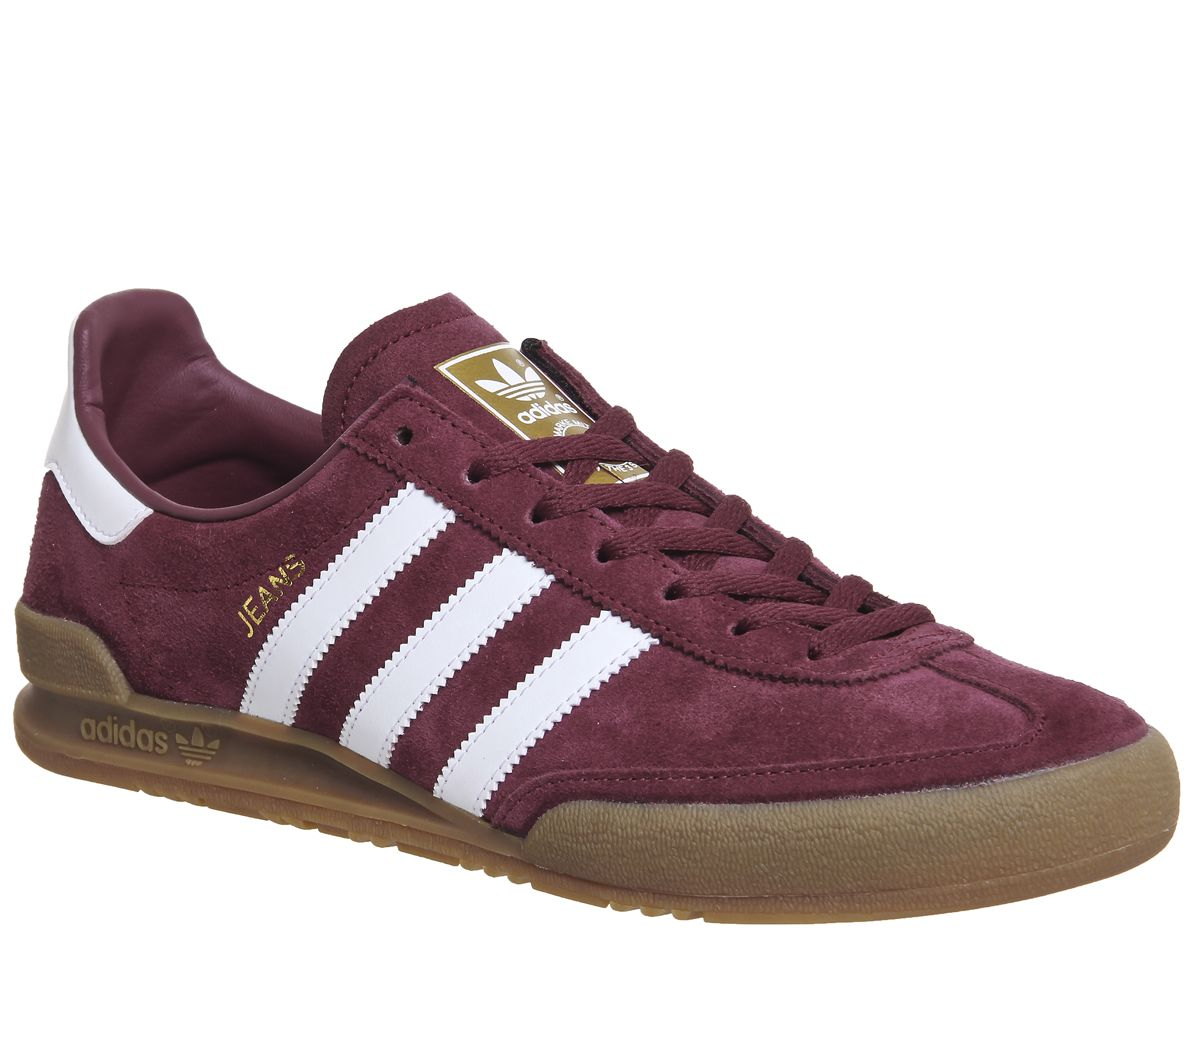 3adc32a5ba57 Adidas Jeans Trainers Maroon White - His trainers